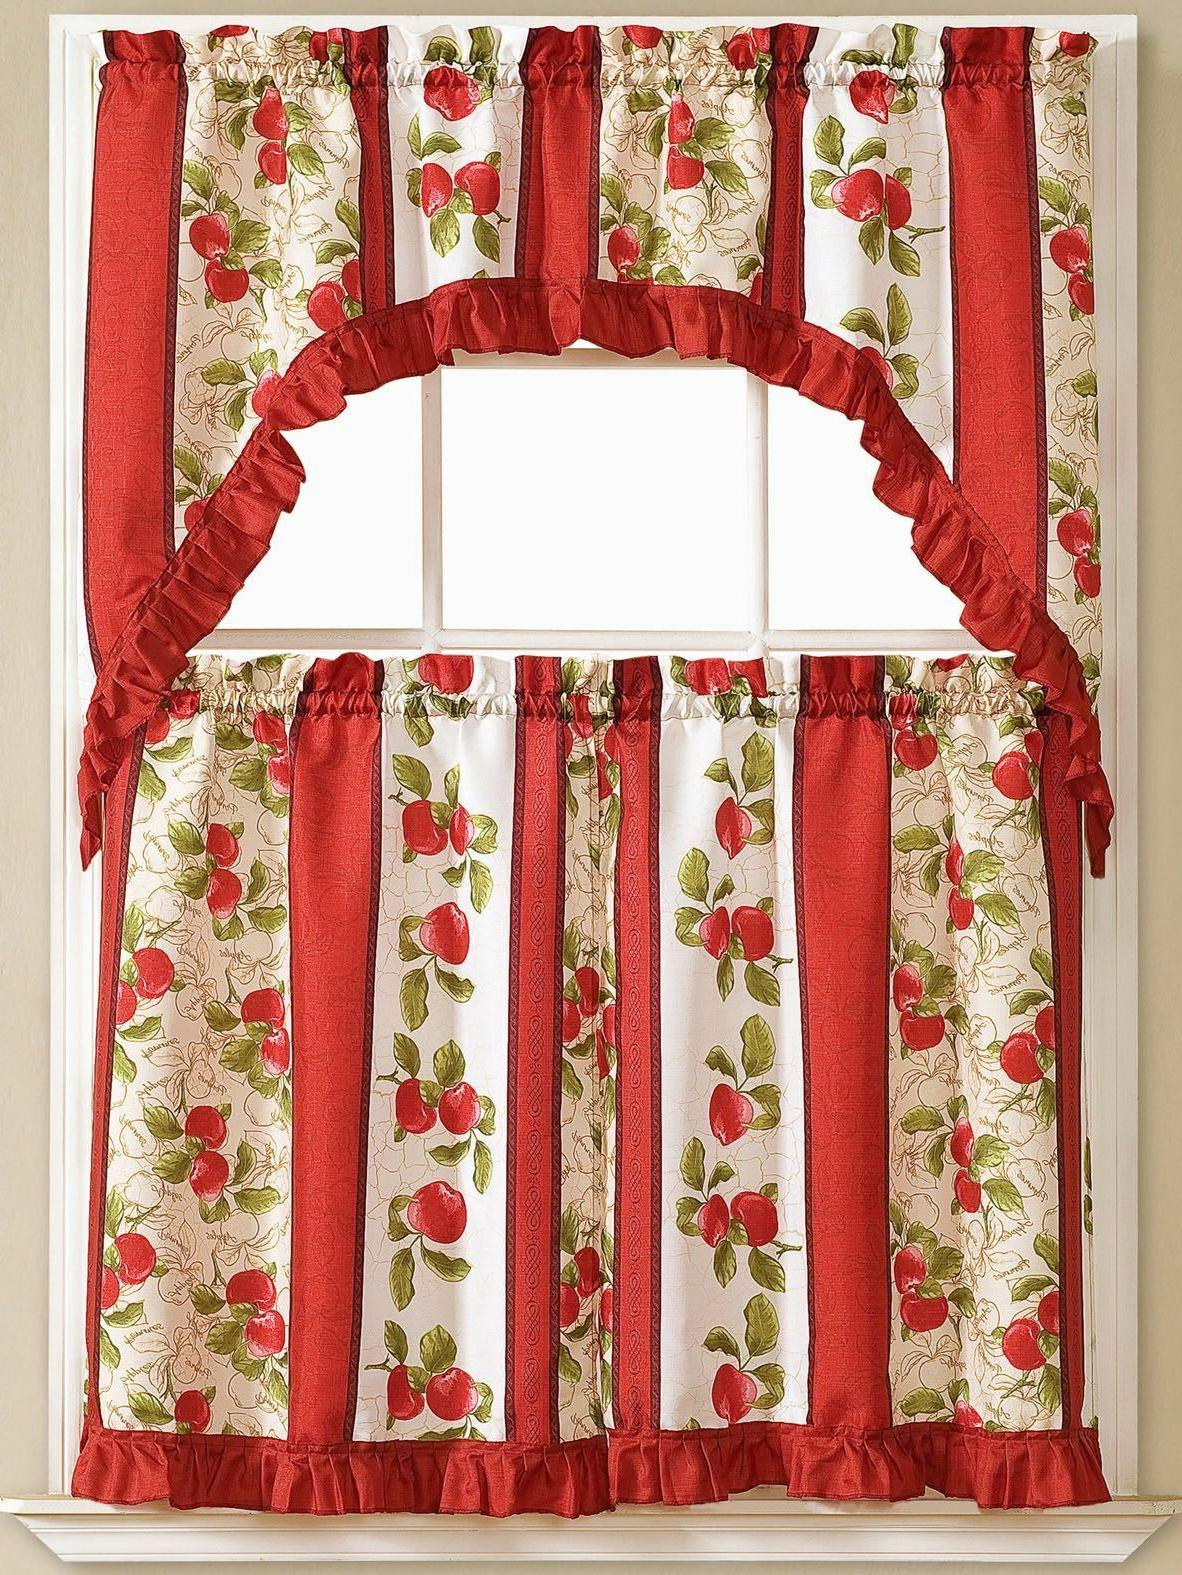 Kitchen Curtains 3 Pc. Set with Valance Tier Swag Red